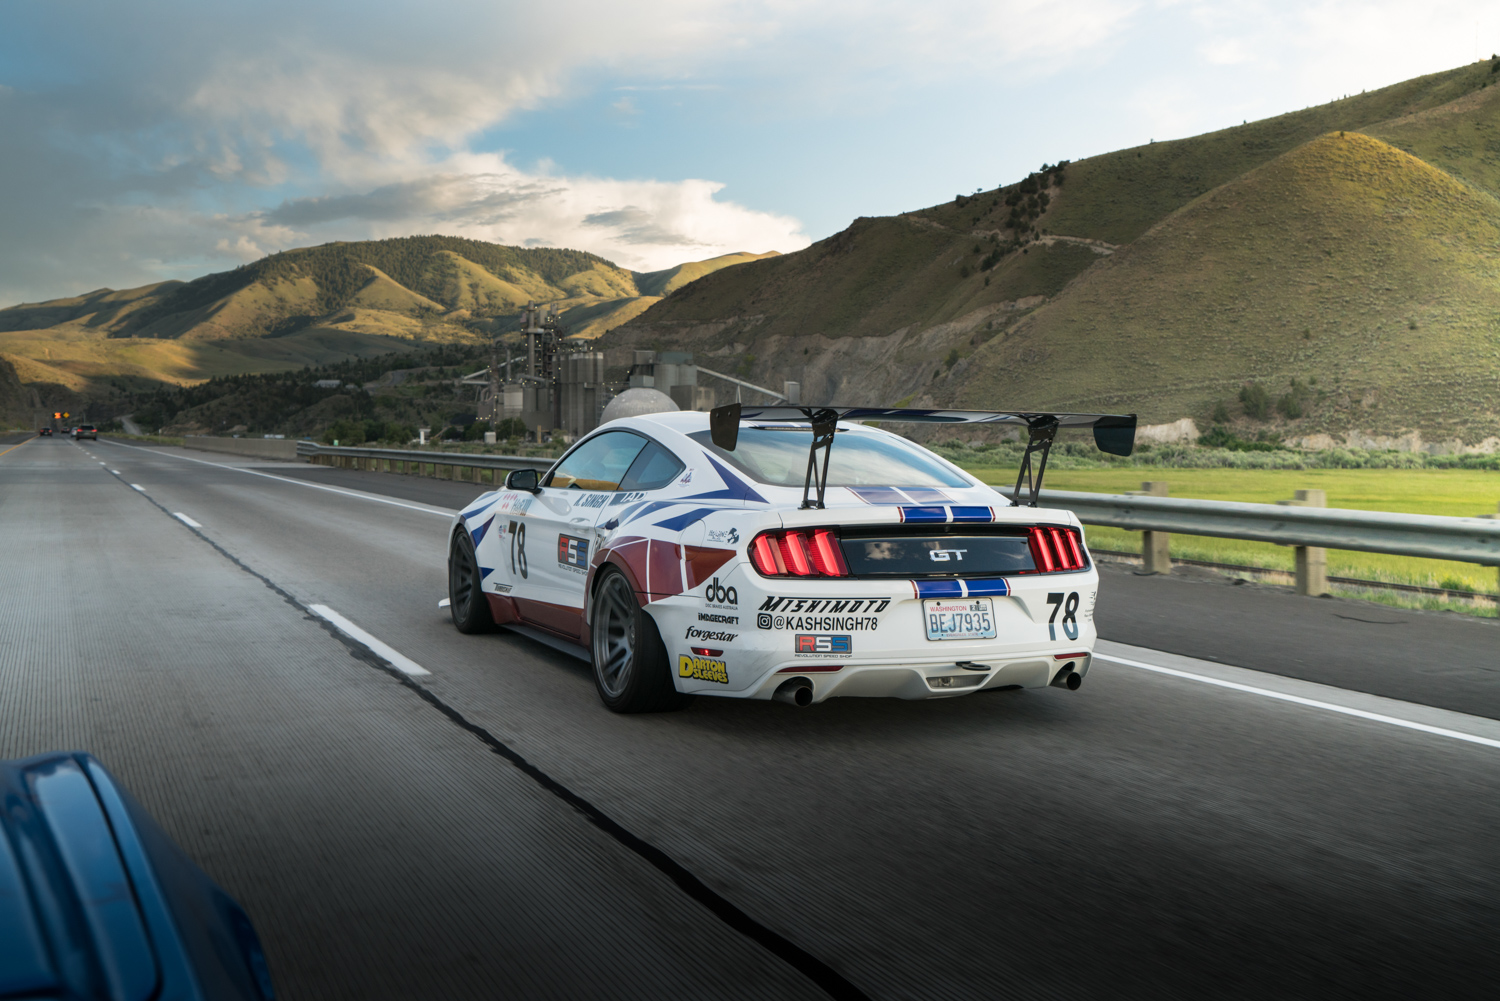 twin turbo mustang 1000 hp on freeway pull mountains